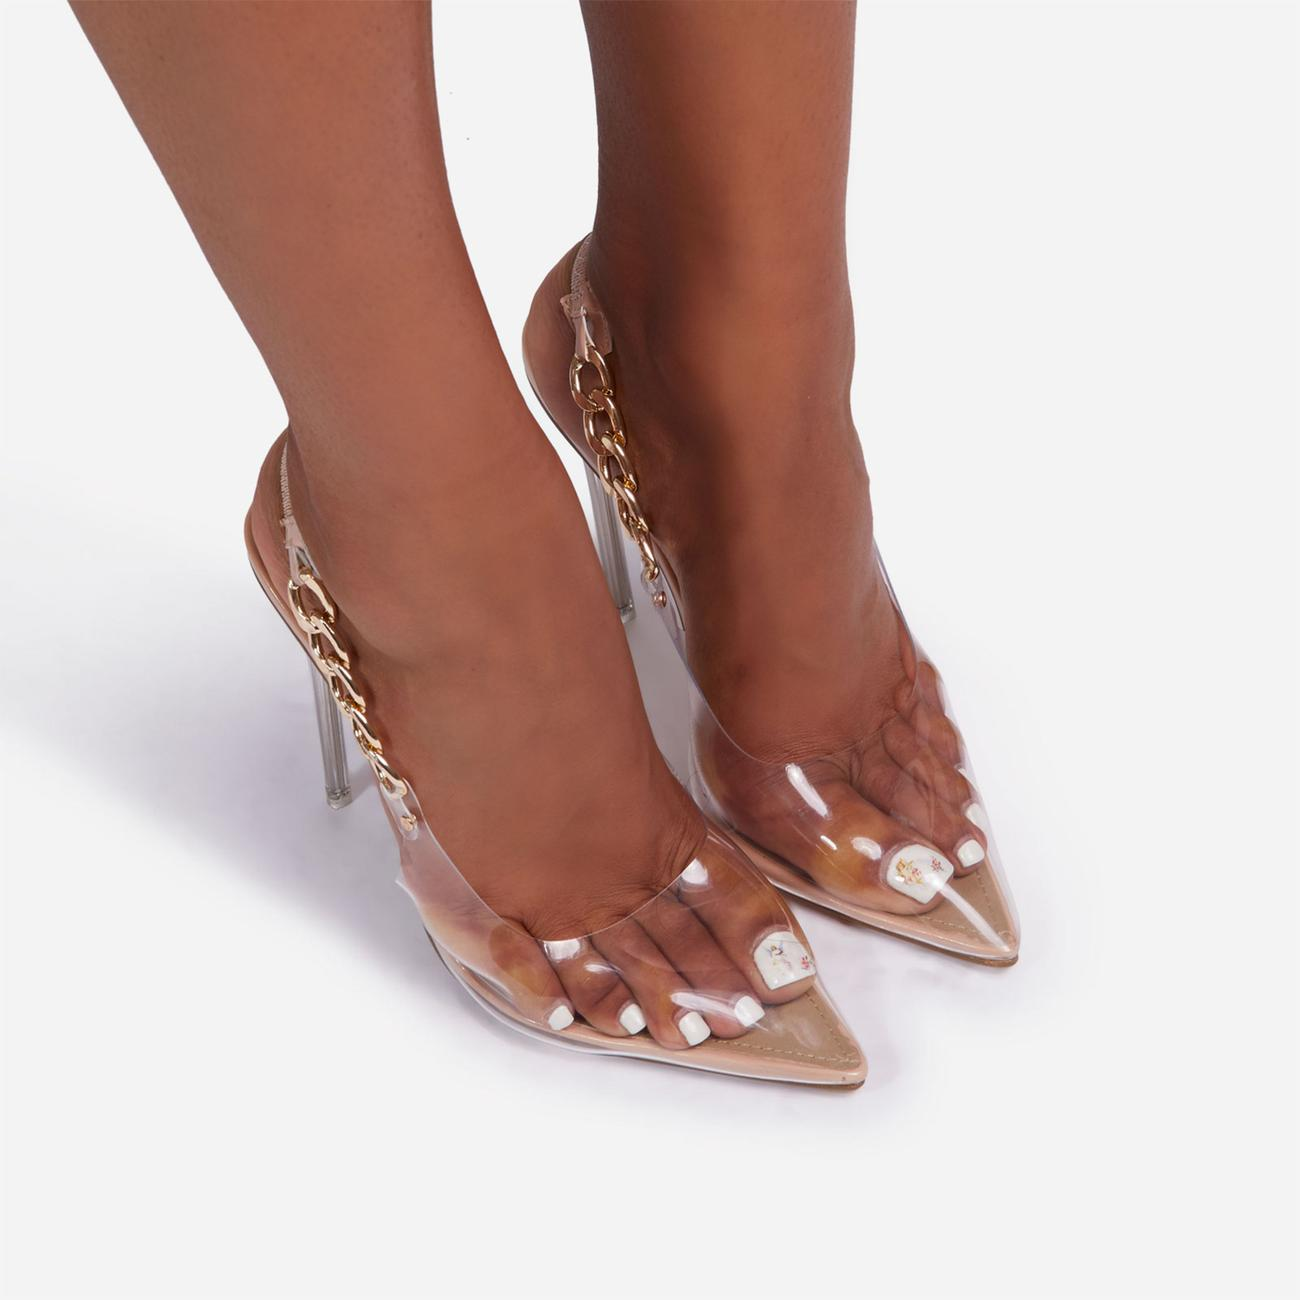 Martini Chunky Chain Detail Sling Back Clear Perspex Heel In Nude Faux Leather Image 3